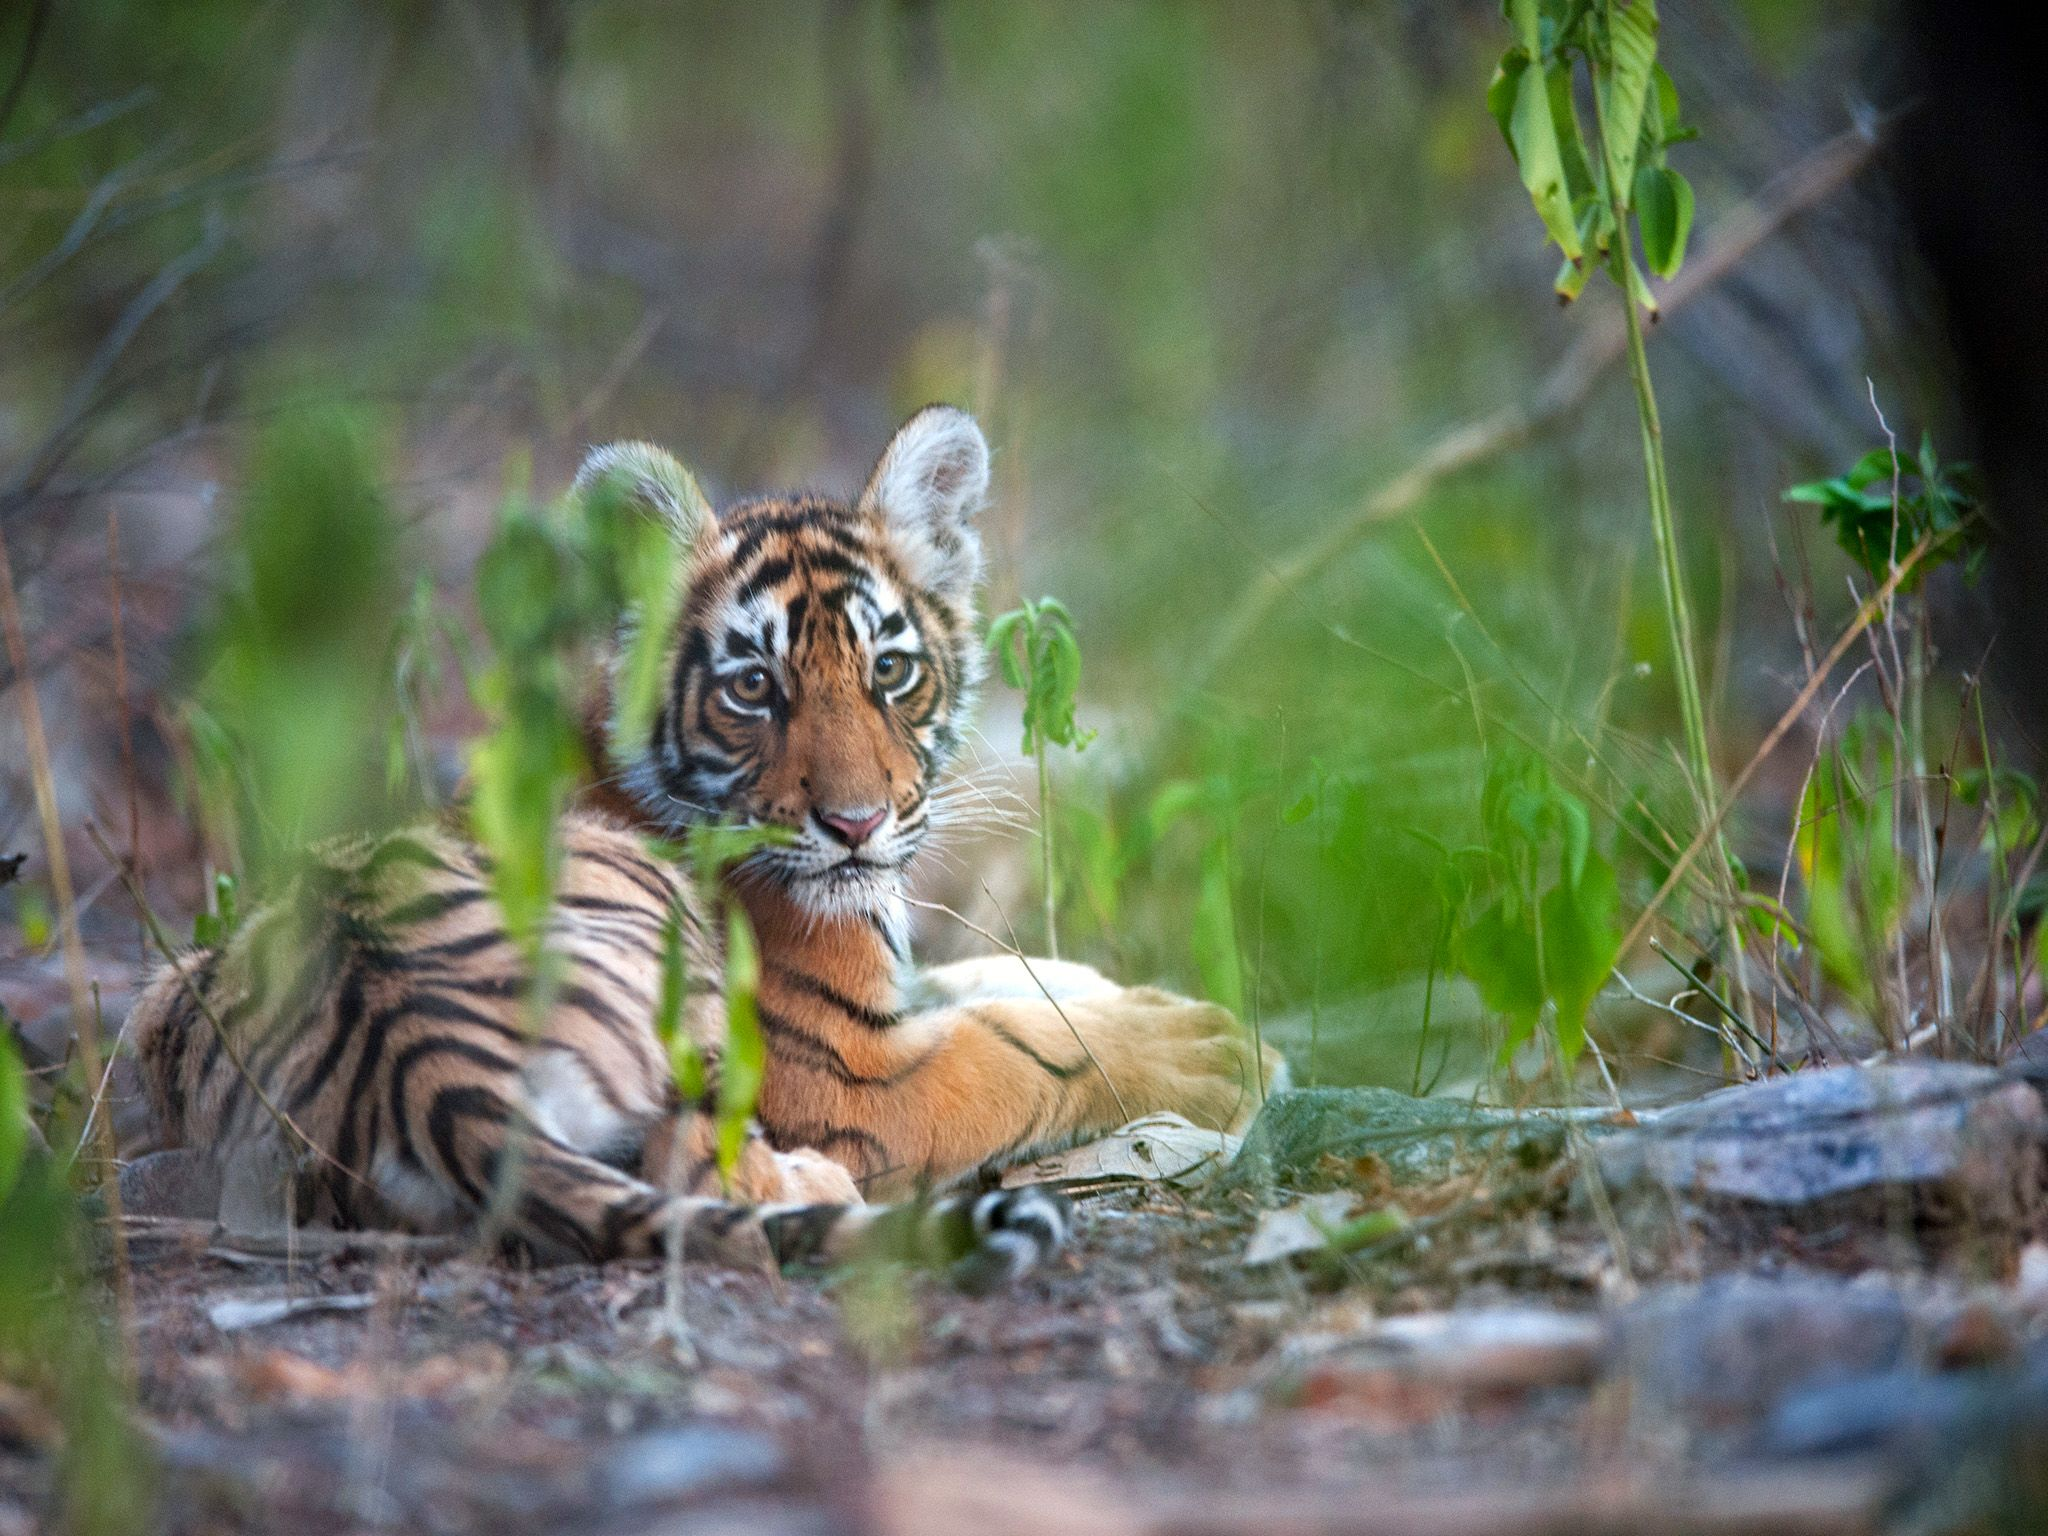 Rajbagh Area, Ranthambore National Park: Sundari's cub.  This image is from Tiger's Revenge. [Photo of the day - February 2015]